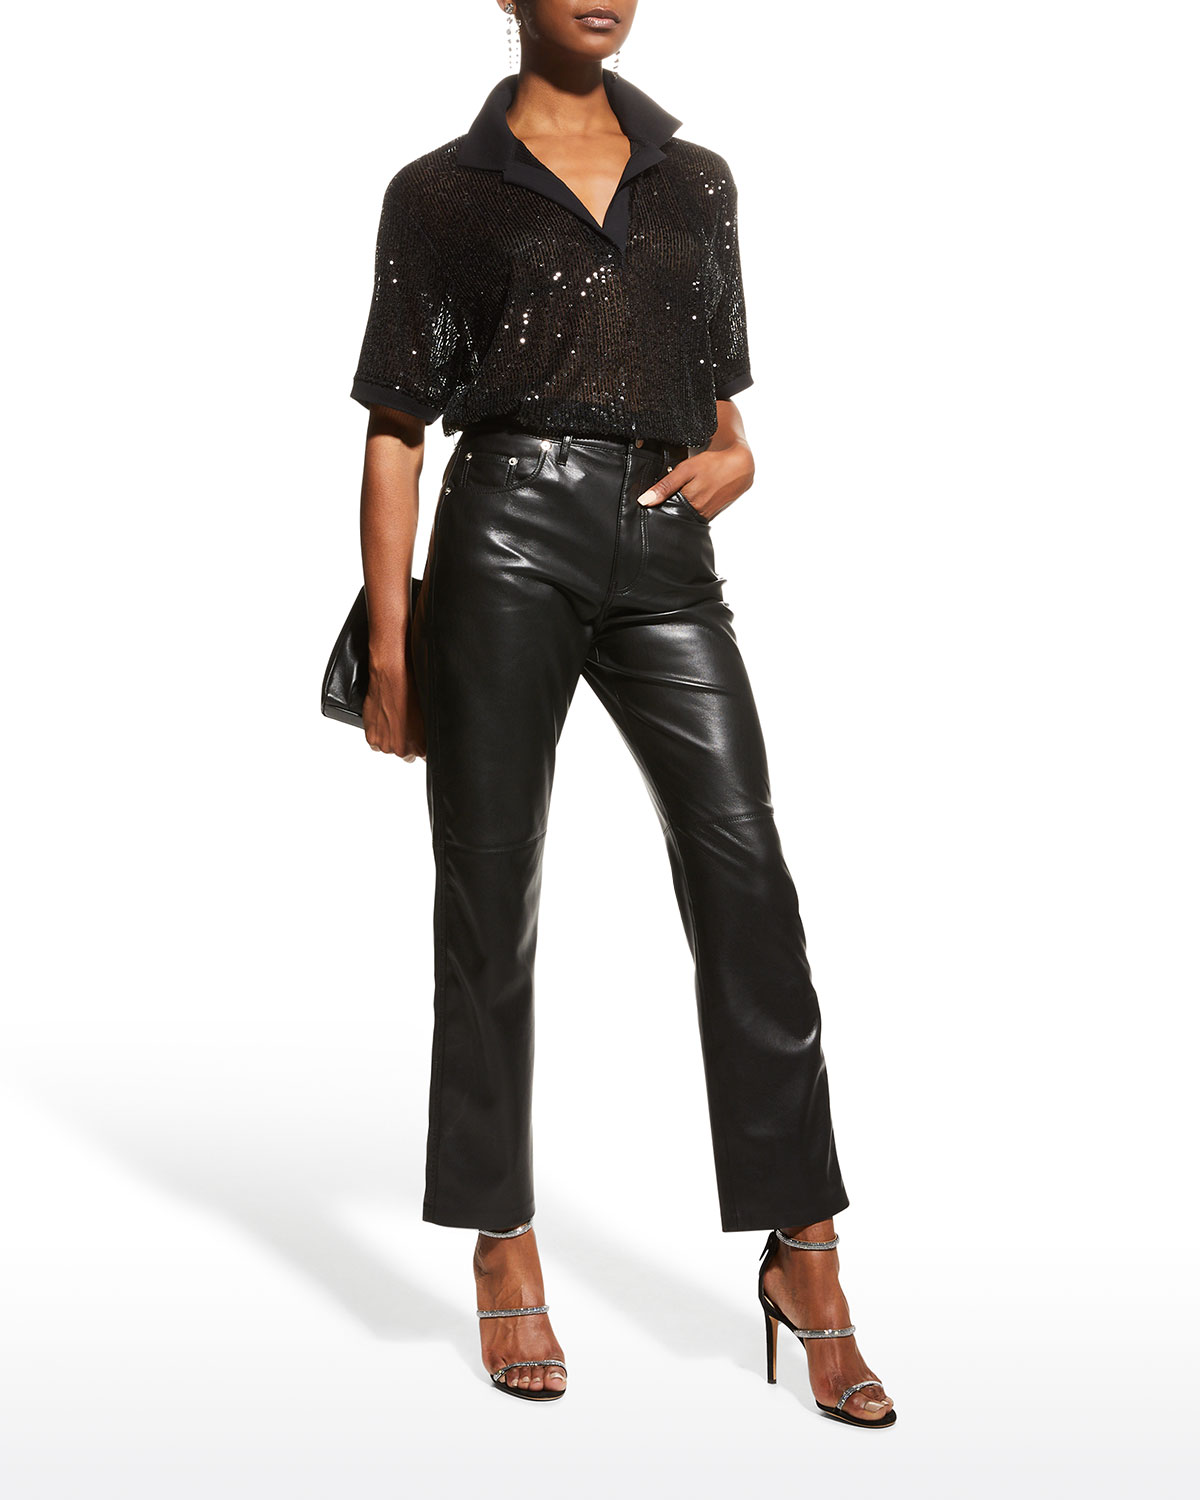 Williams Sequined Collared Top